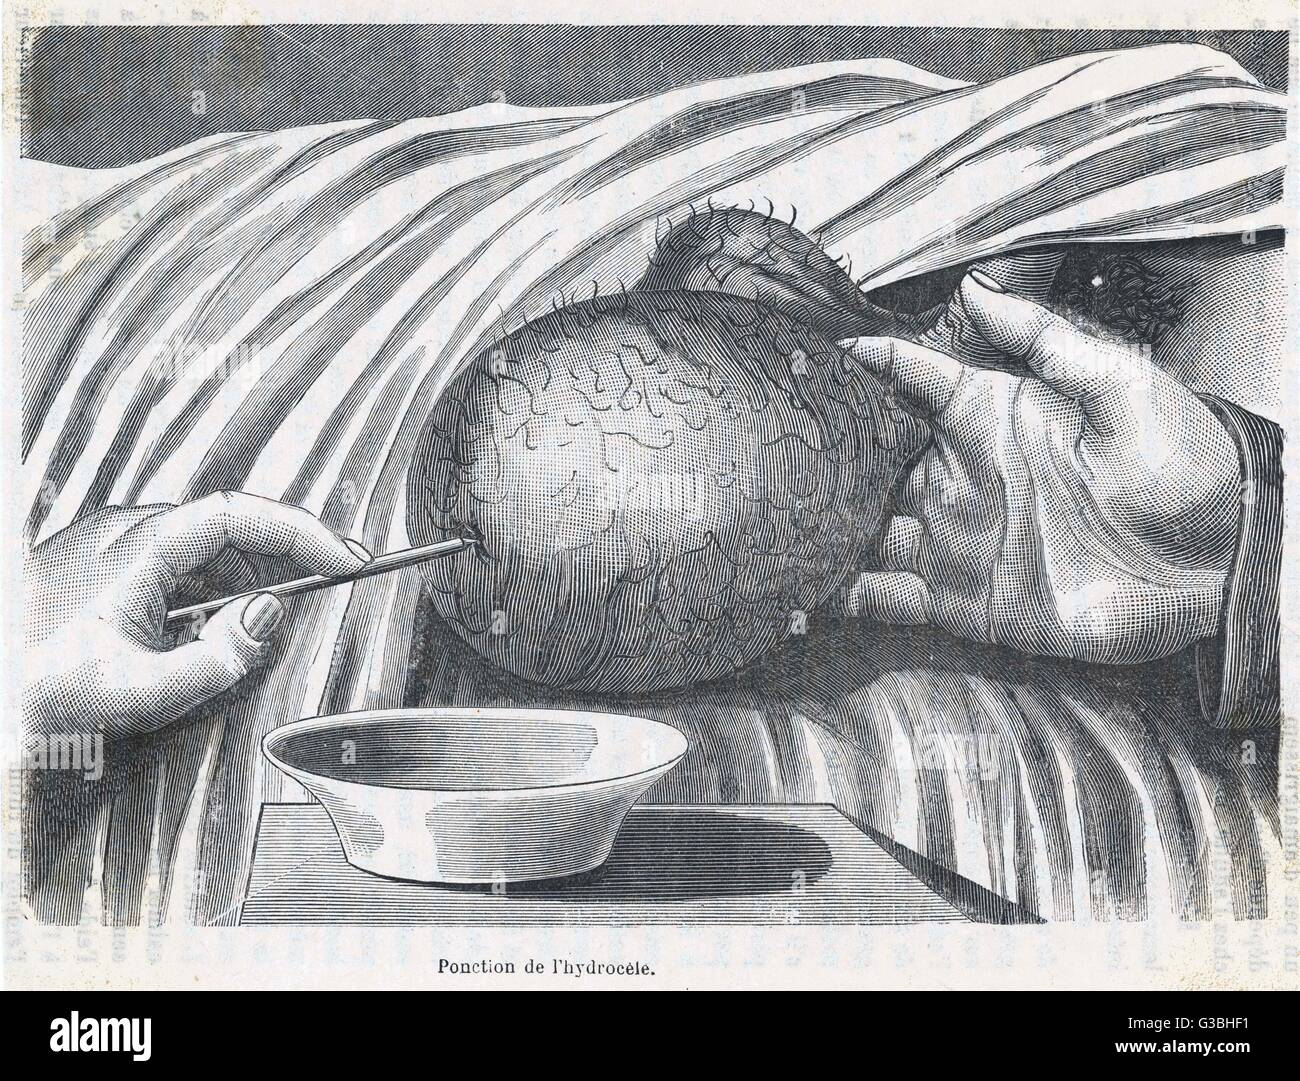 Removing fluid from a large  testicular growth         Date: circa 1870 - Stock Image